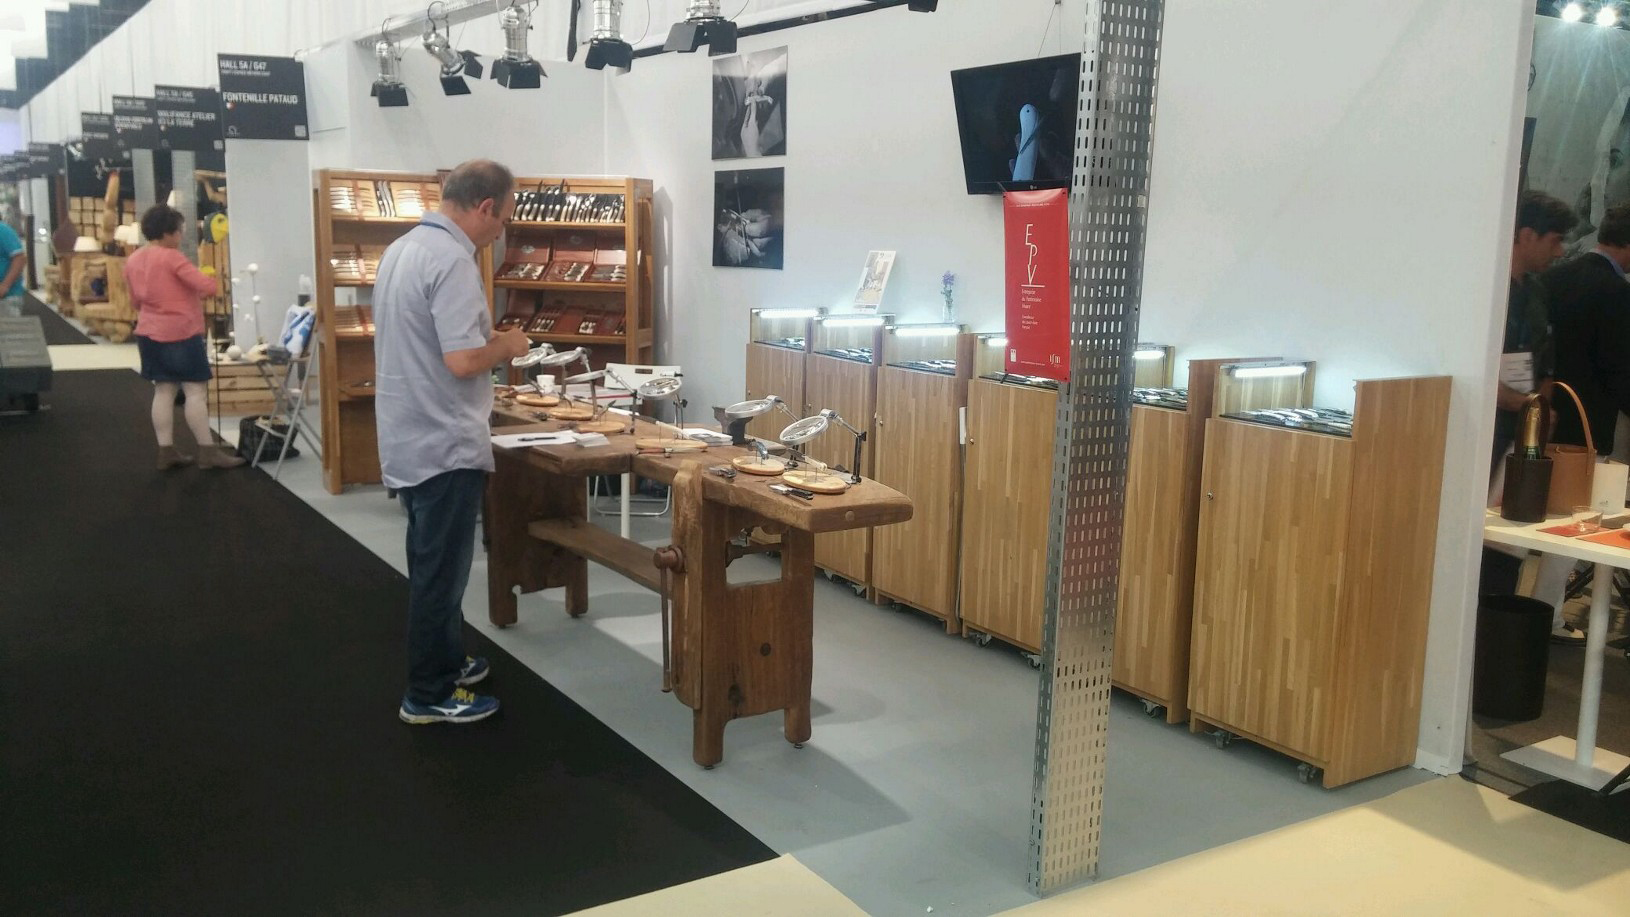 Fontenille-Pataud folding knives and table knive at Maison & Objet Tradeshow in Paris